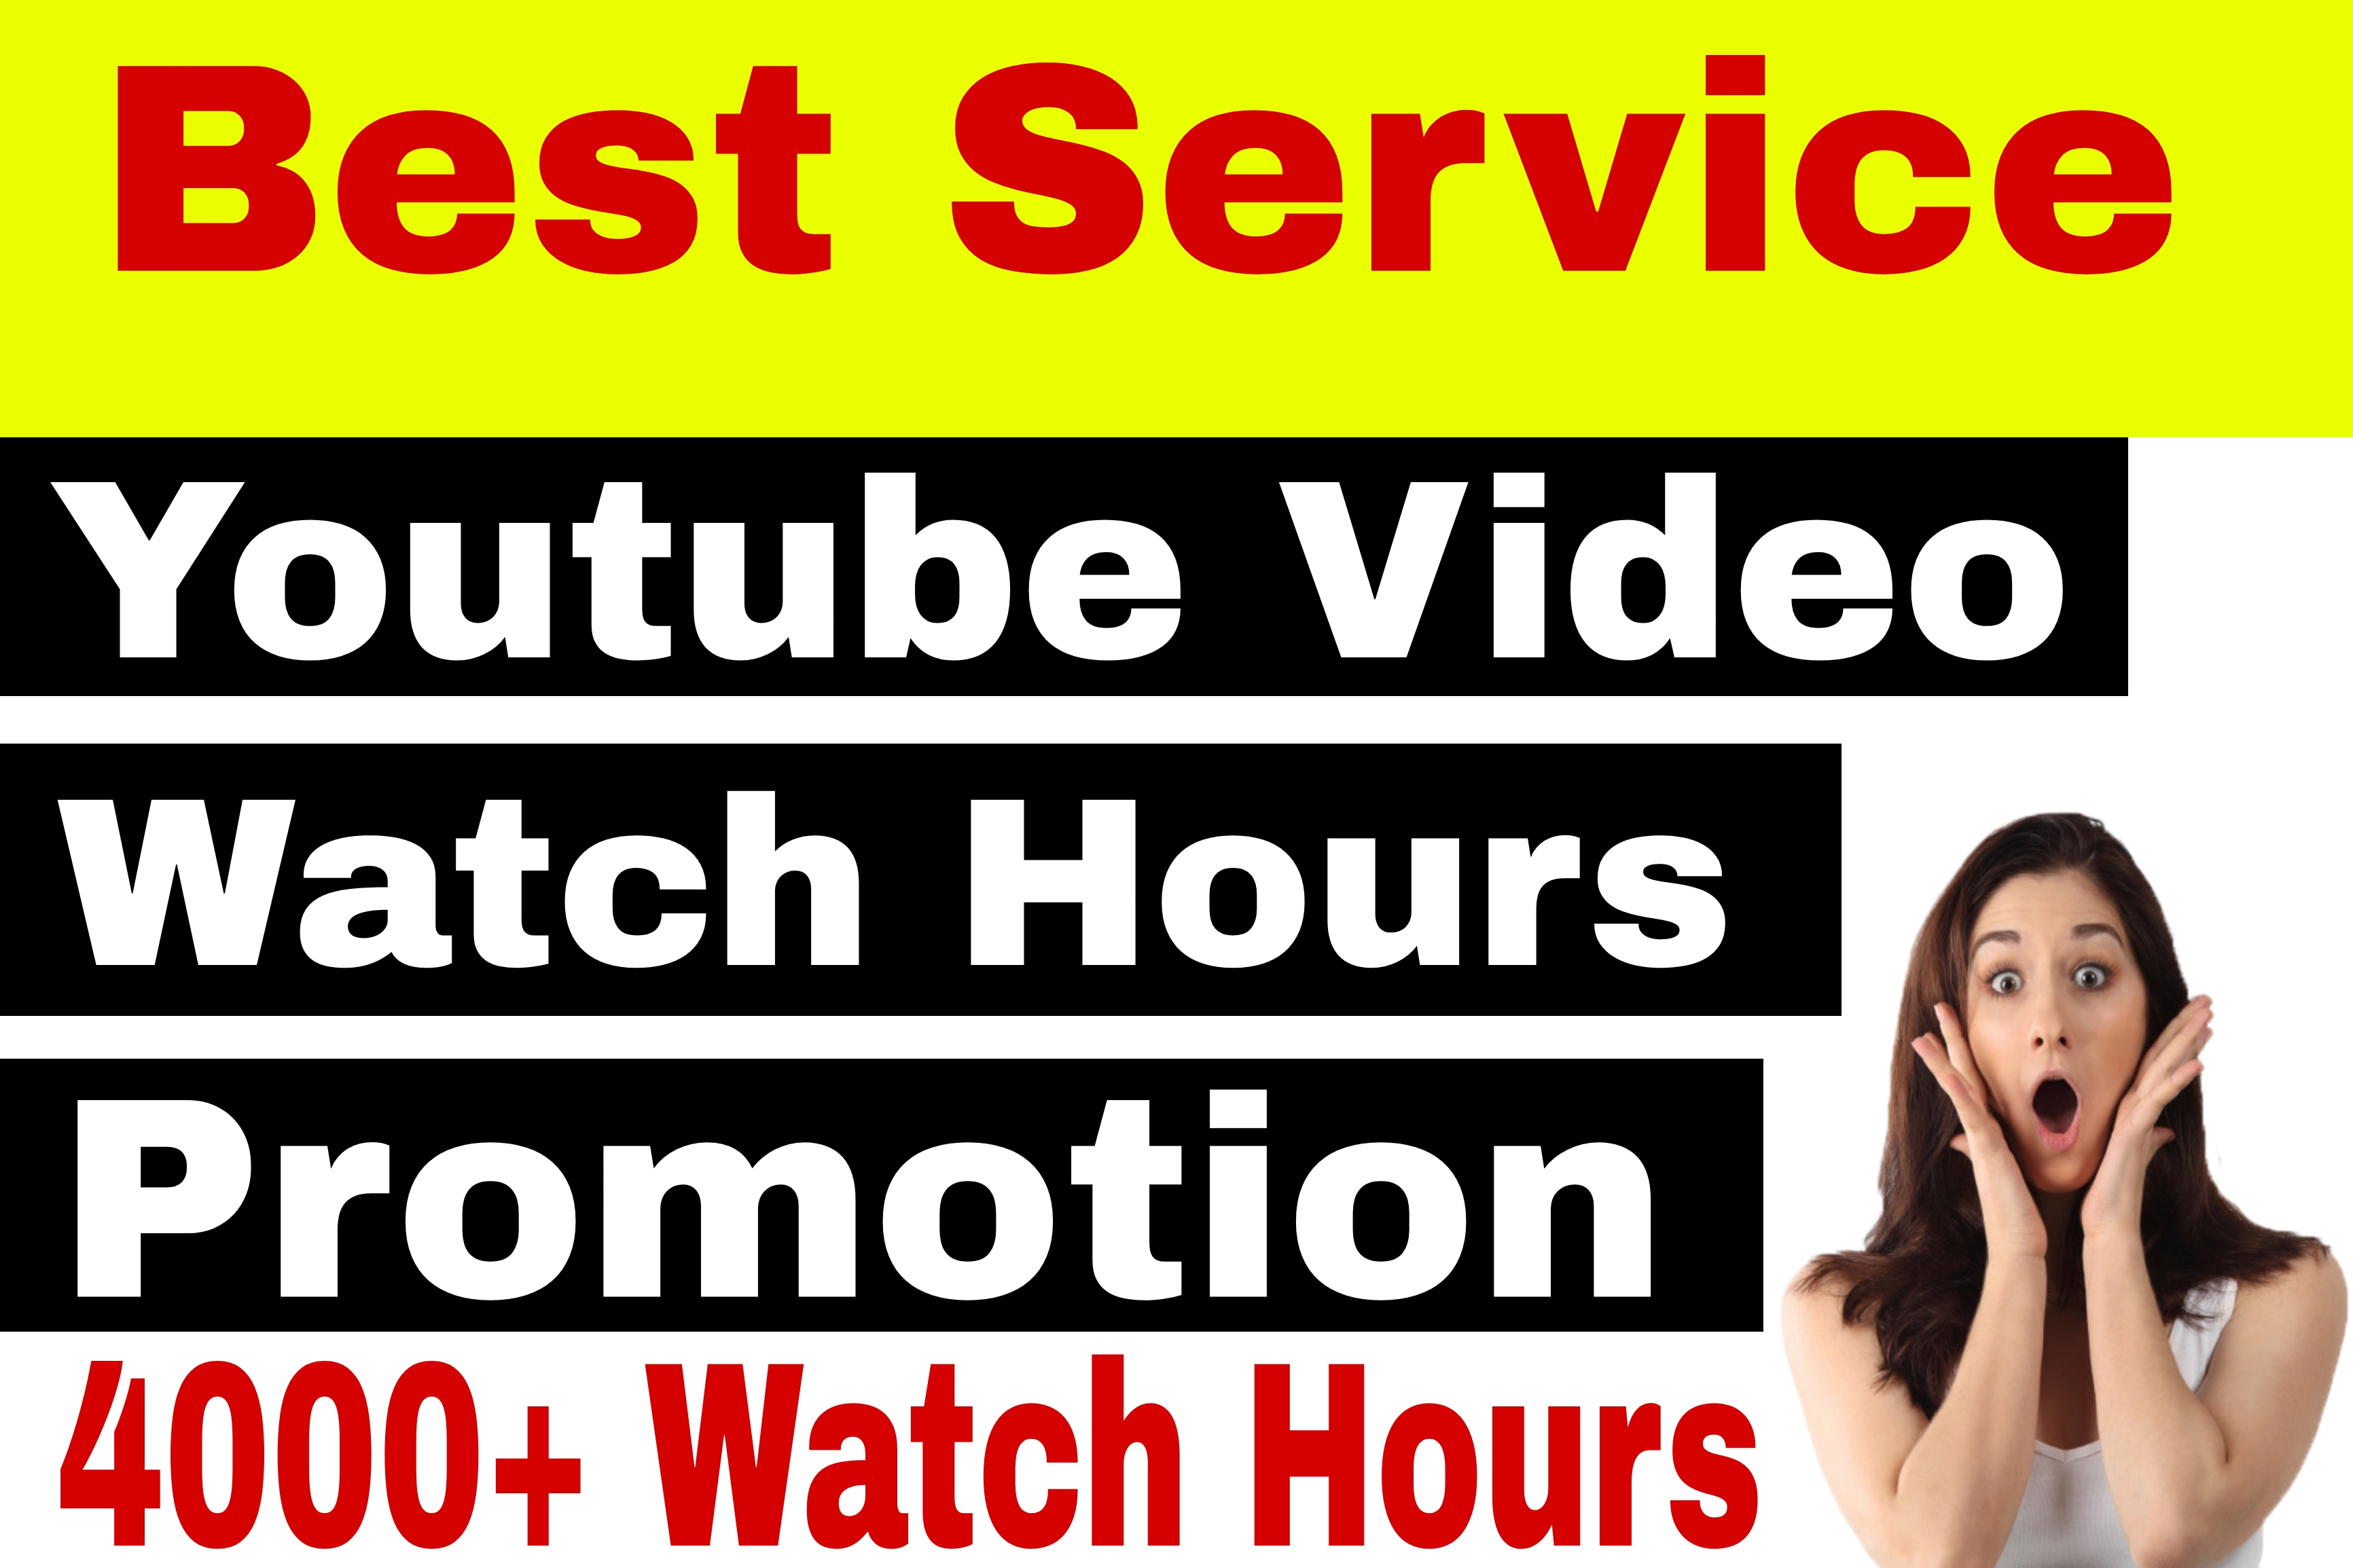 Youtube Video Watch Time Hours Promotion And Marketing Via Human Audience